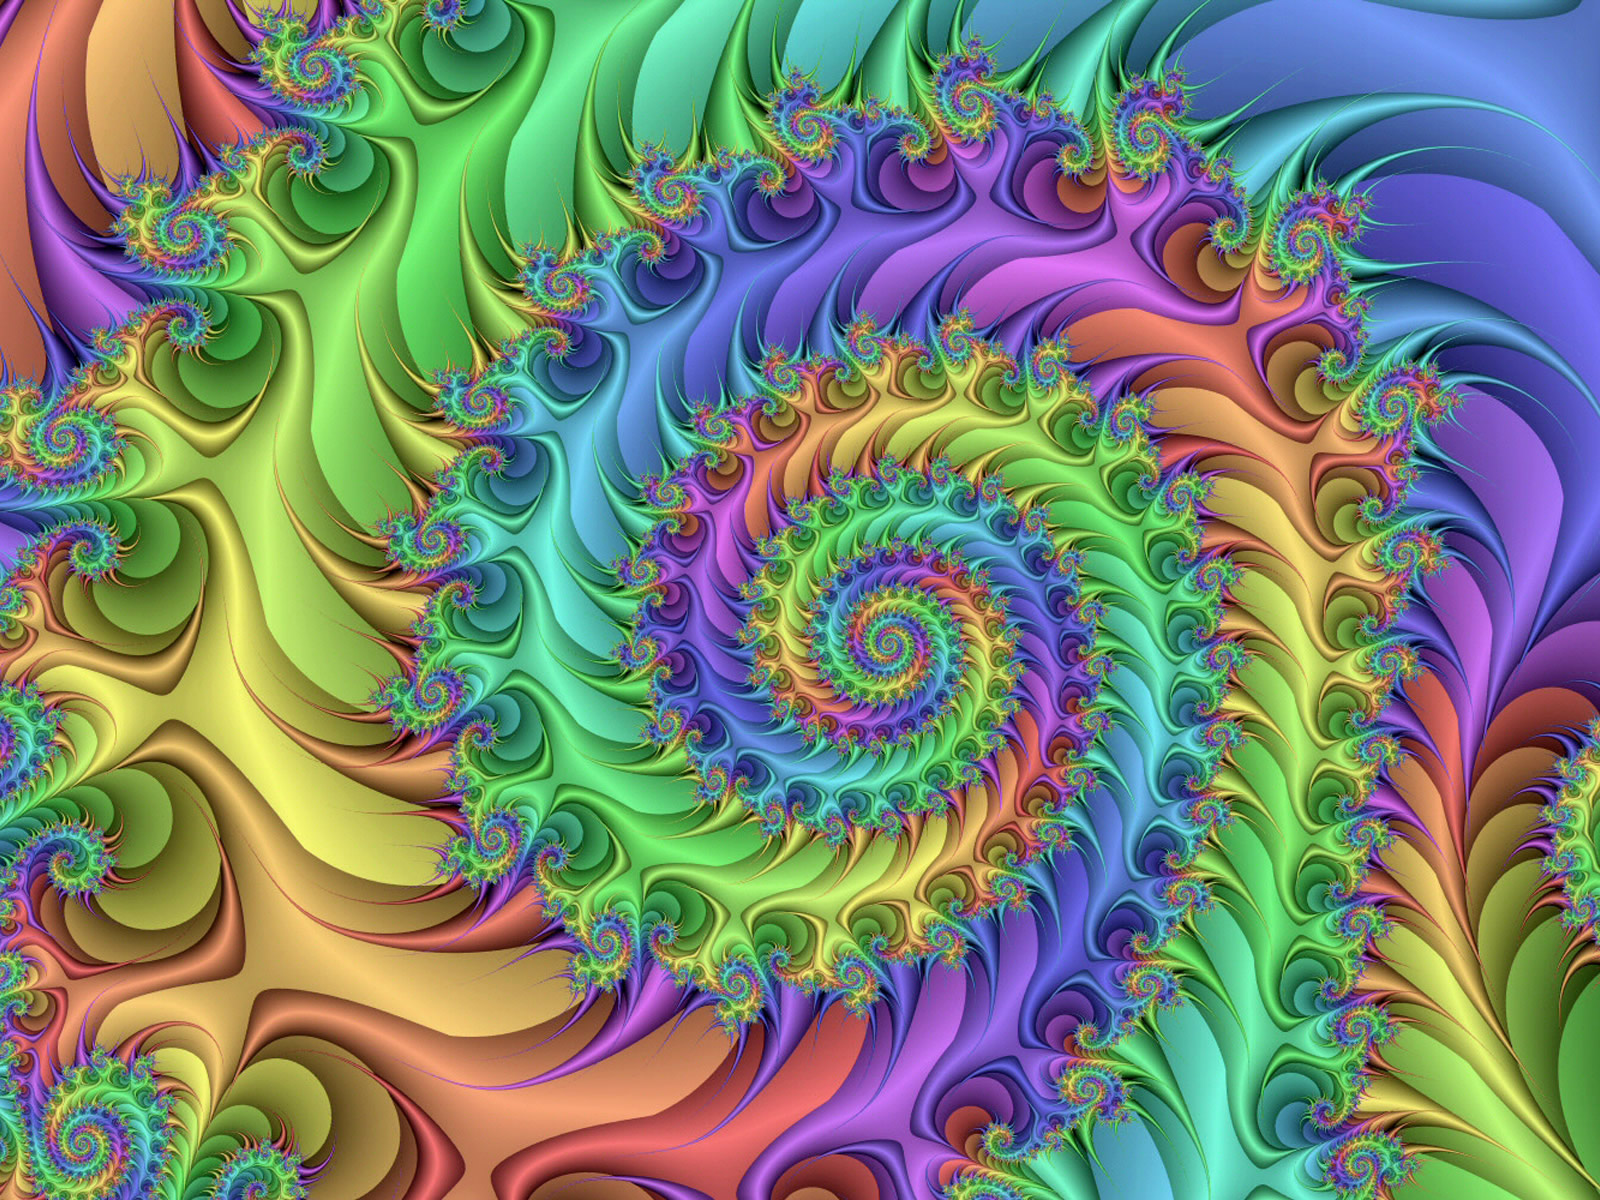 trippy colorful wallpapers - photo #1